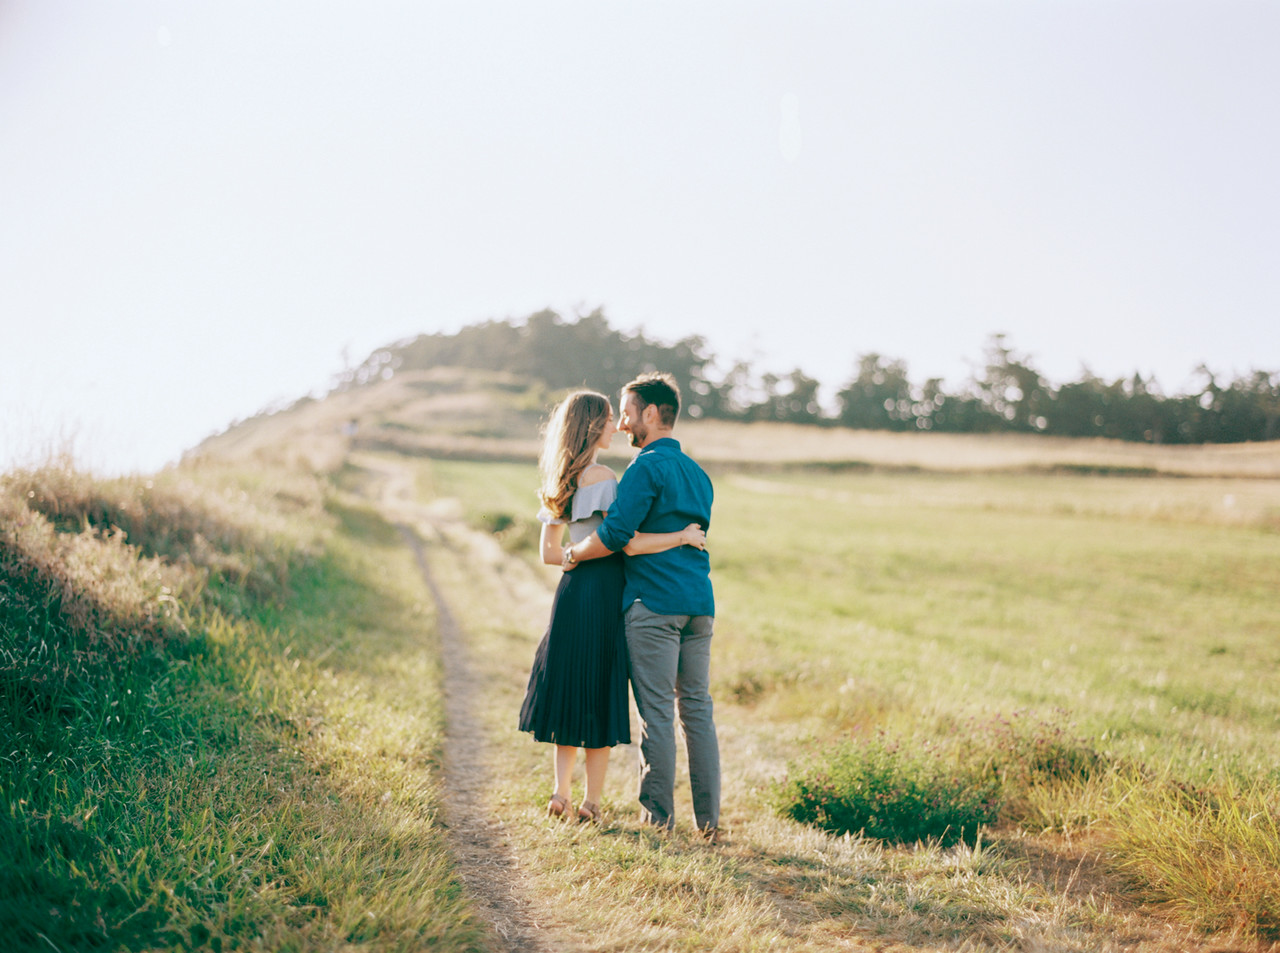 We continue our Documenting Love series with Jaime & Matt's engagement shoot on Whidbey Island's Ebey's Landing and on a Lavendar Farm on the Island. The couple spent the day with the photographer extraordinaire, Blue Rose Photography and snapped these beautiful shots.  Click through the gallery and get inspo, or to just gaze upon the beauty that is this engagement shoot. Do you or somebody you know have a wedding you think deserves the spotlight? We LOVE (pun intended) documenting love stories, so email us at hello@seattlerefined.com to submit some wedding or engagement shots! (Image: Blue Rose Photography)